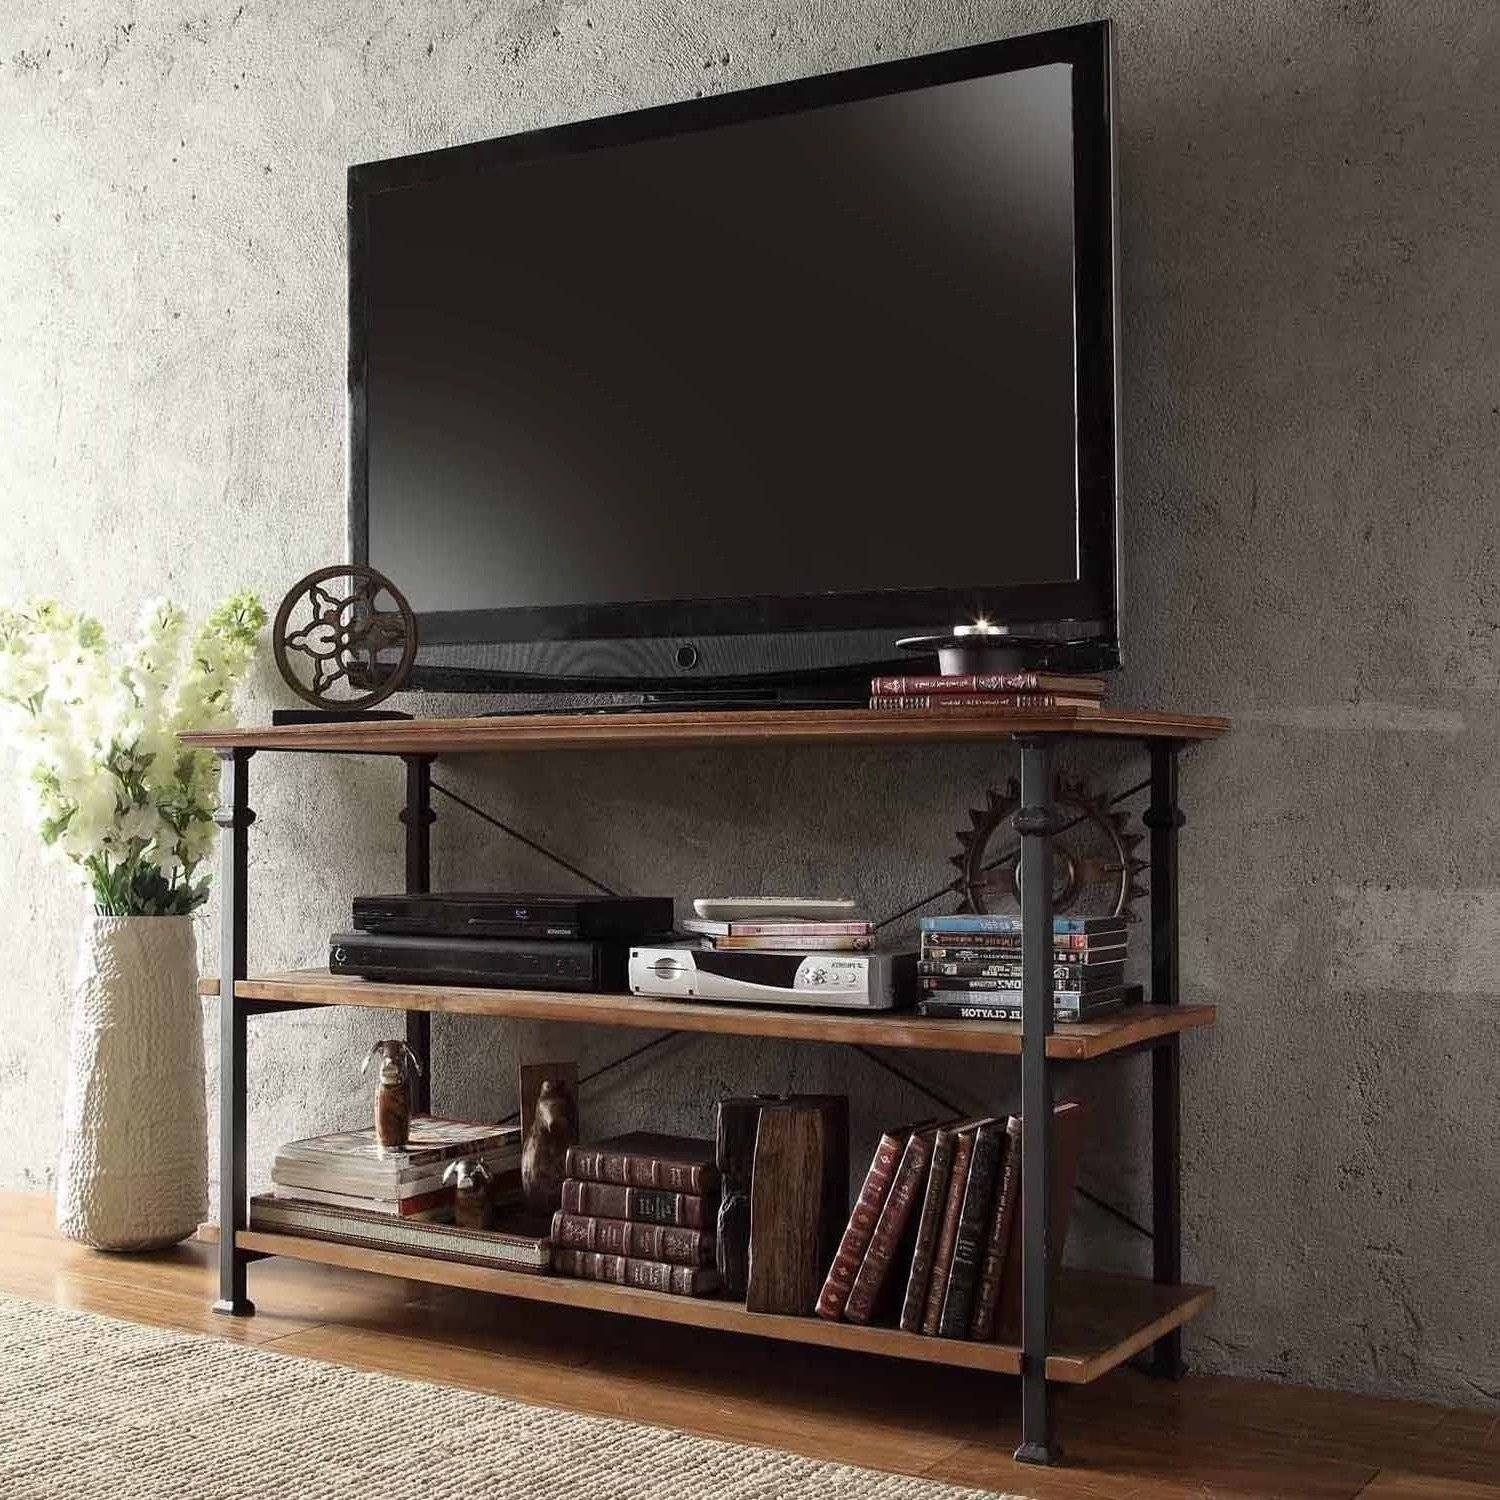 Furniture & Rug: Extraordinary Woodtv For Best Tv Stand Ideas For Rustic 60 Inch Tv Stands (View 11 of 15)